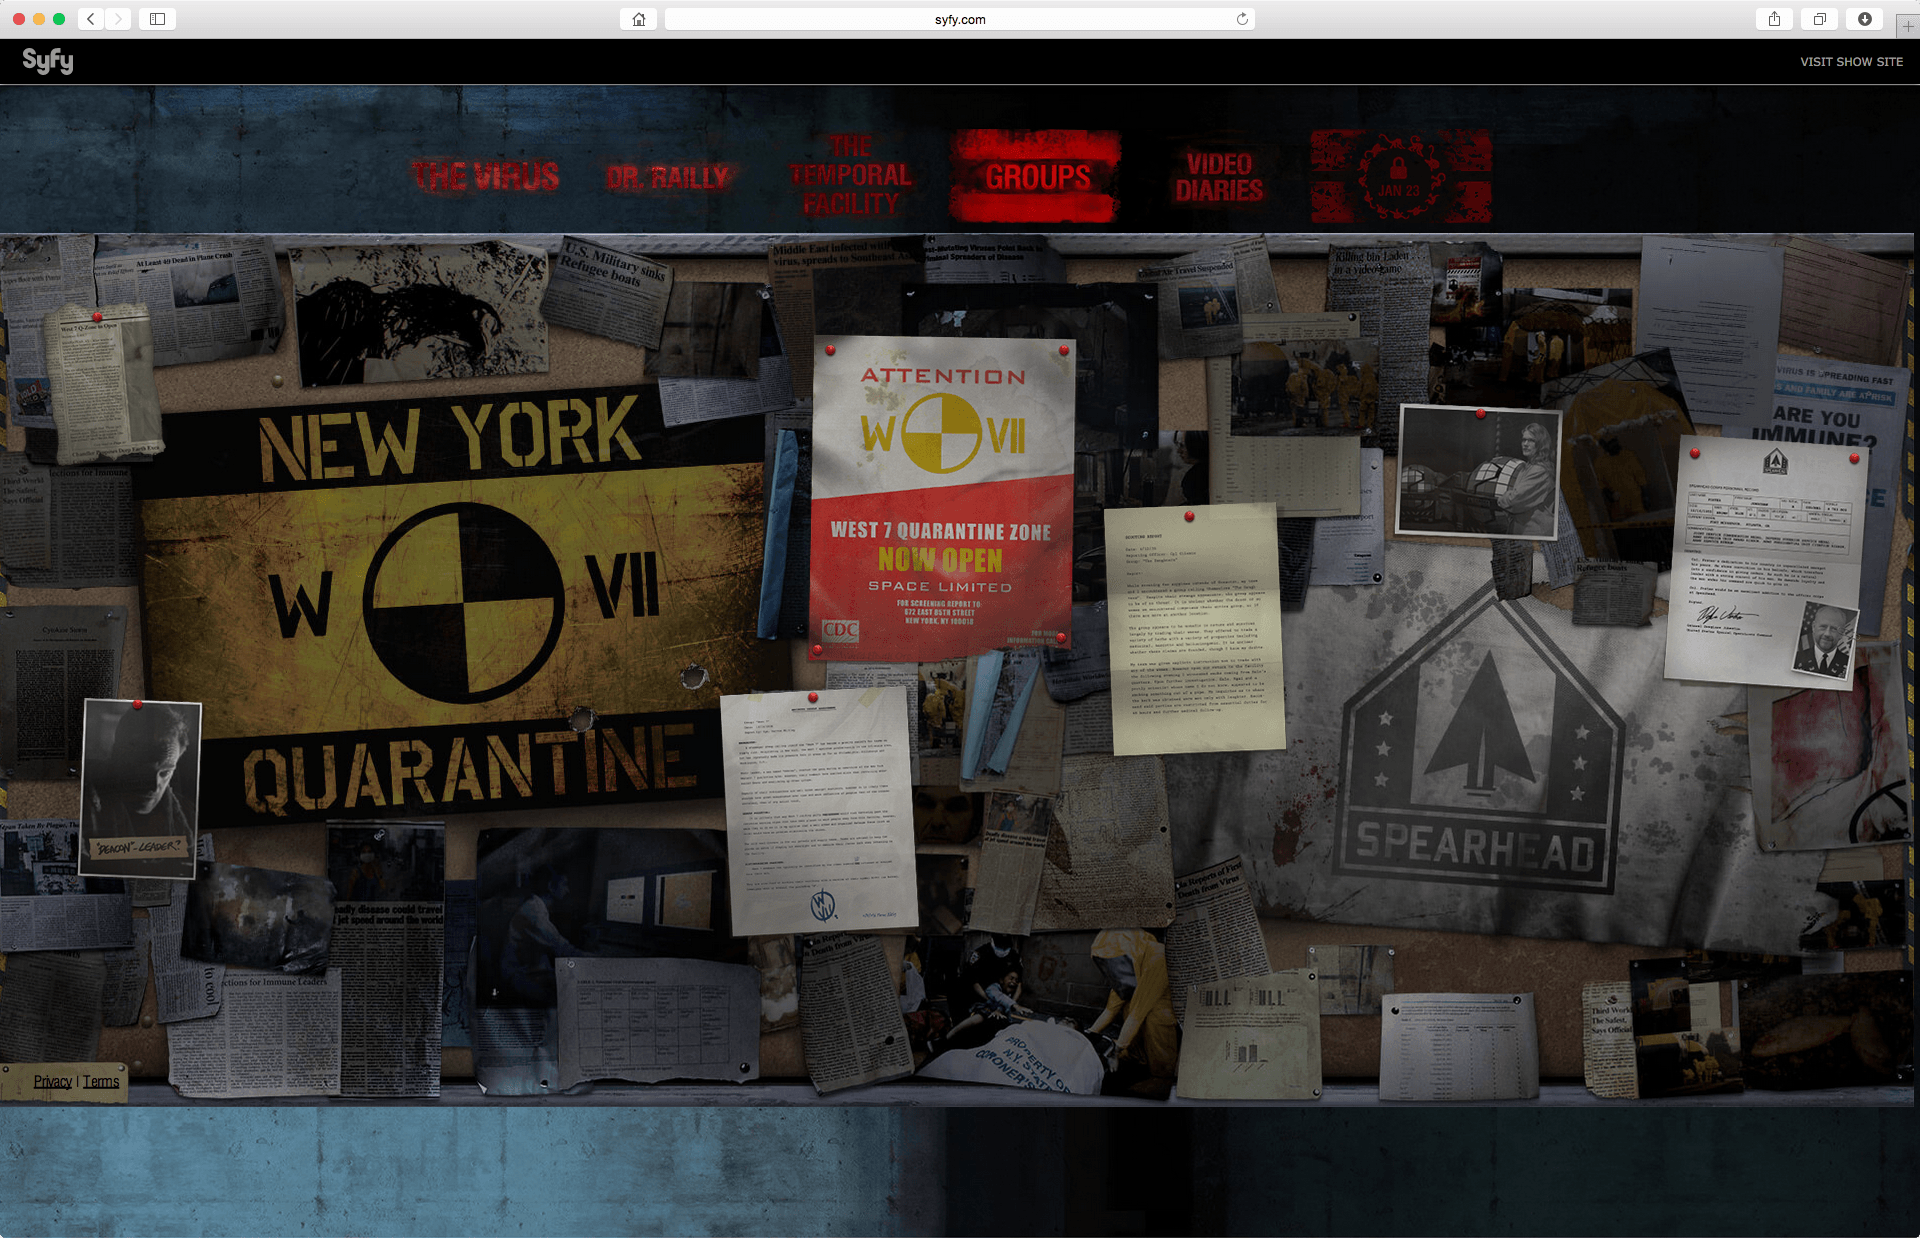 The wall of information on the main organized Groups in show's story.